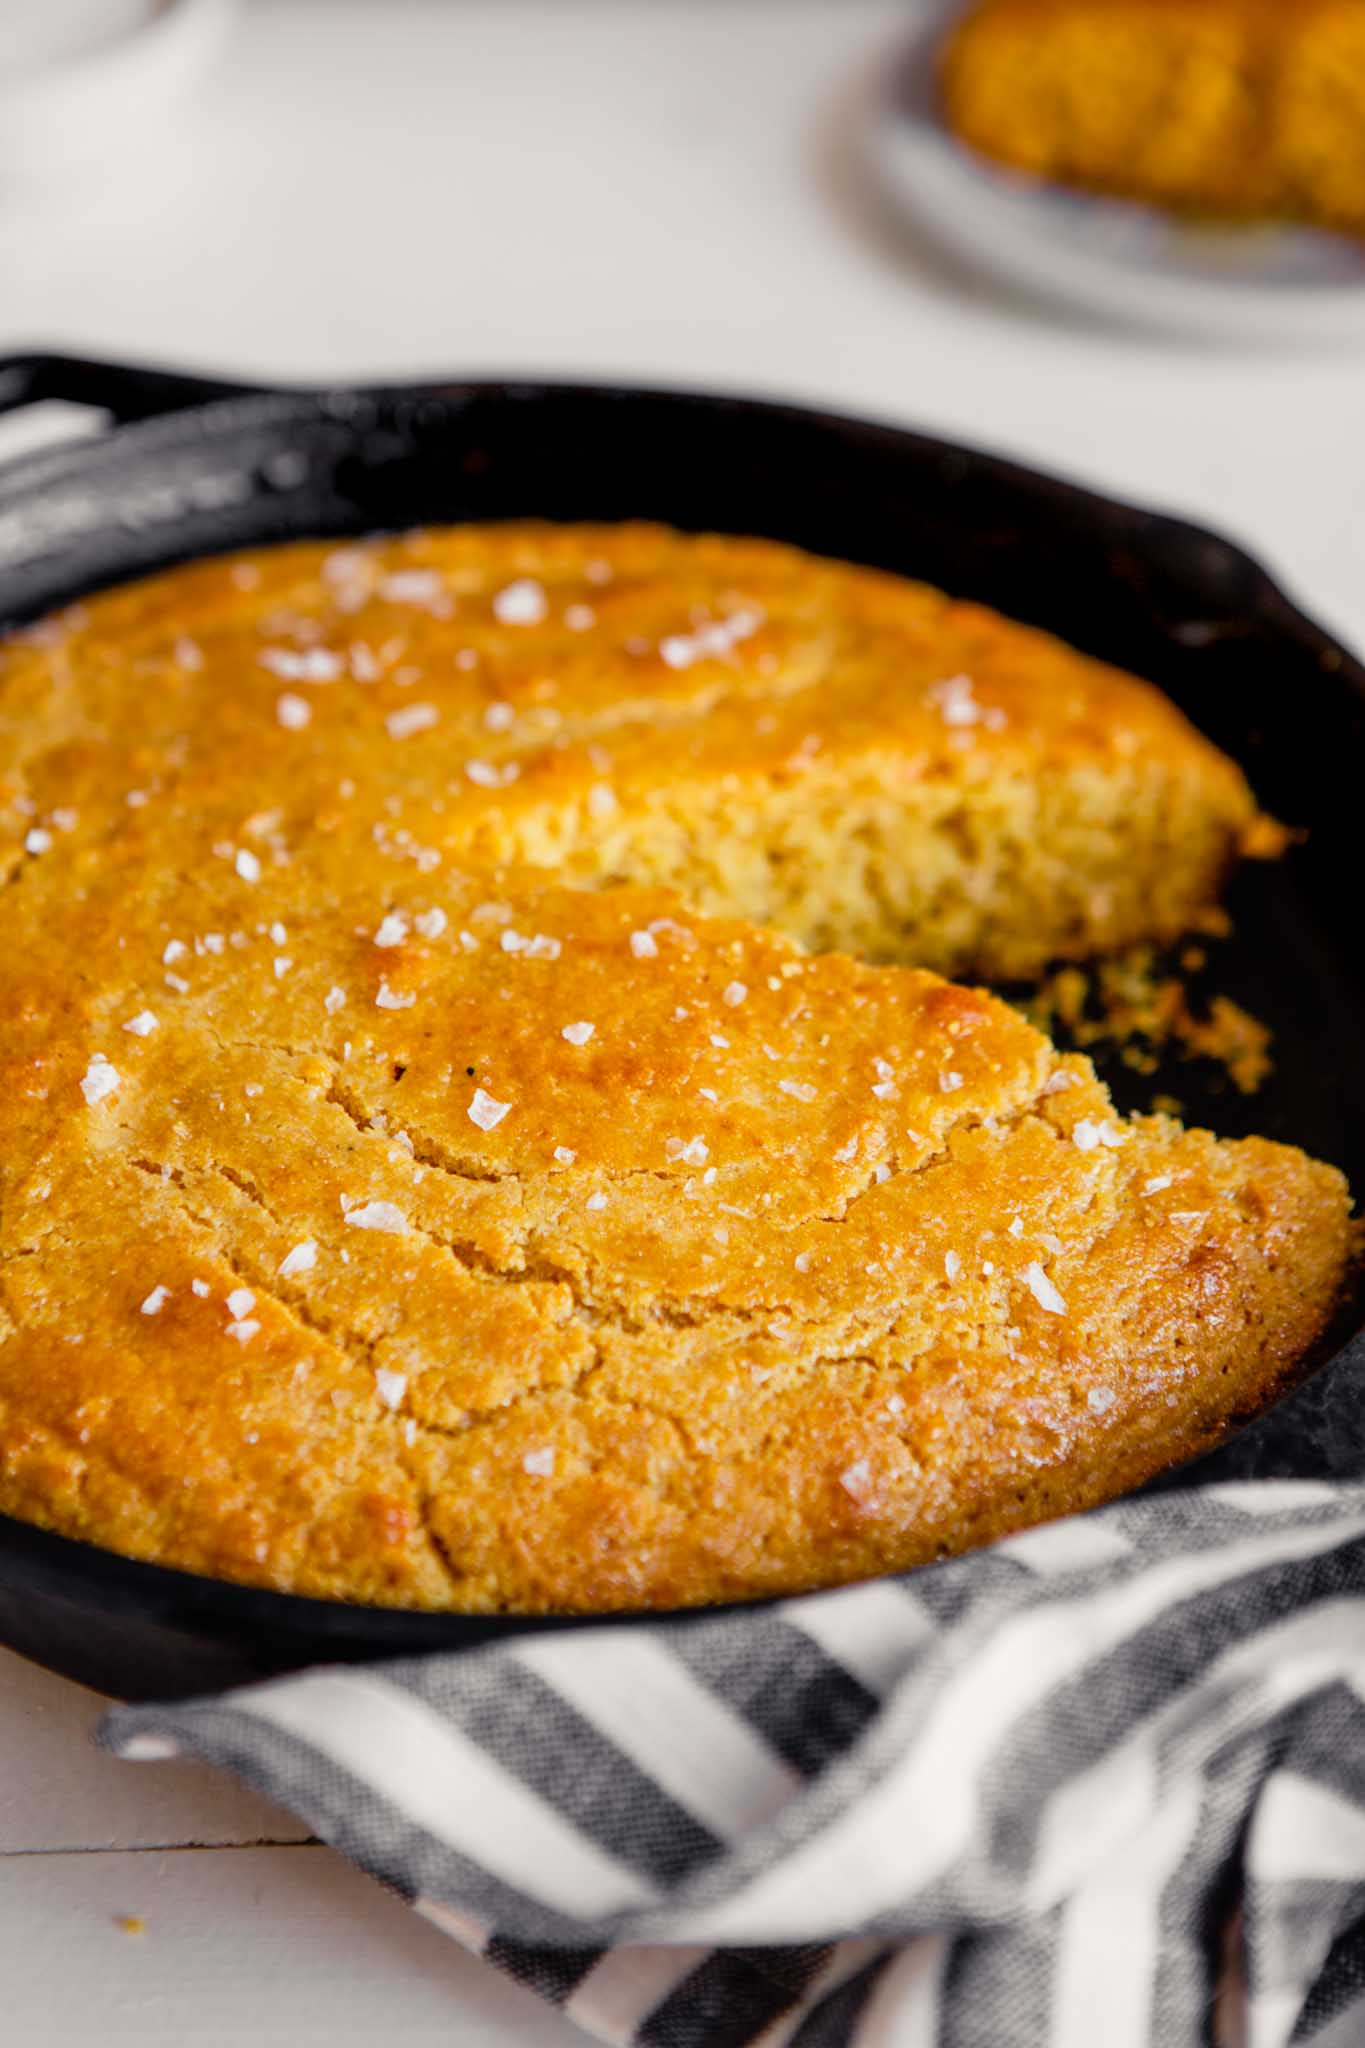 Side angle of cornbread in a cast iron skillet with a piece taken out